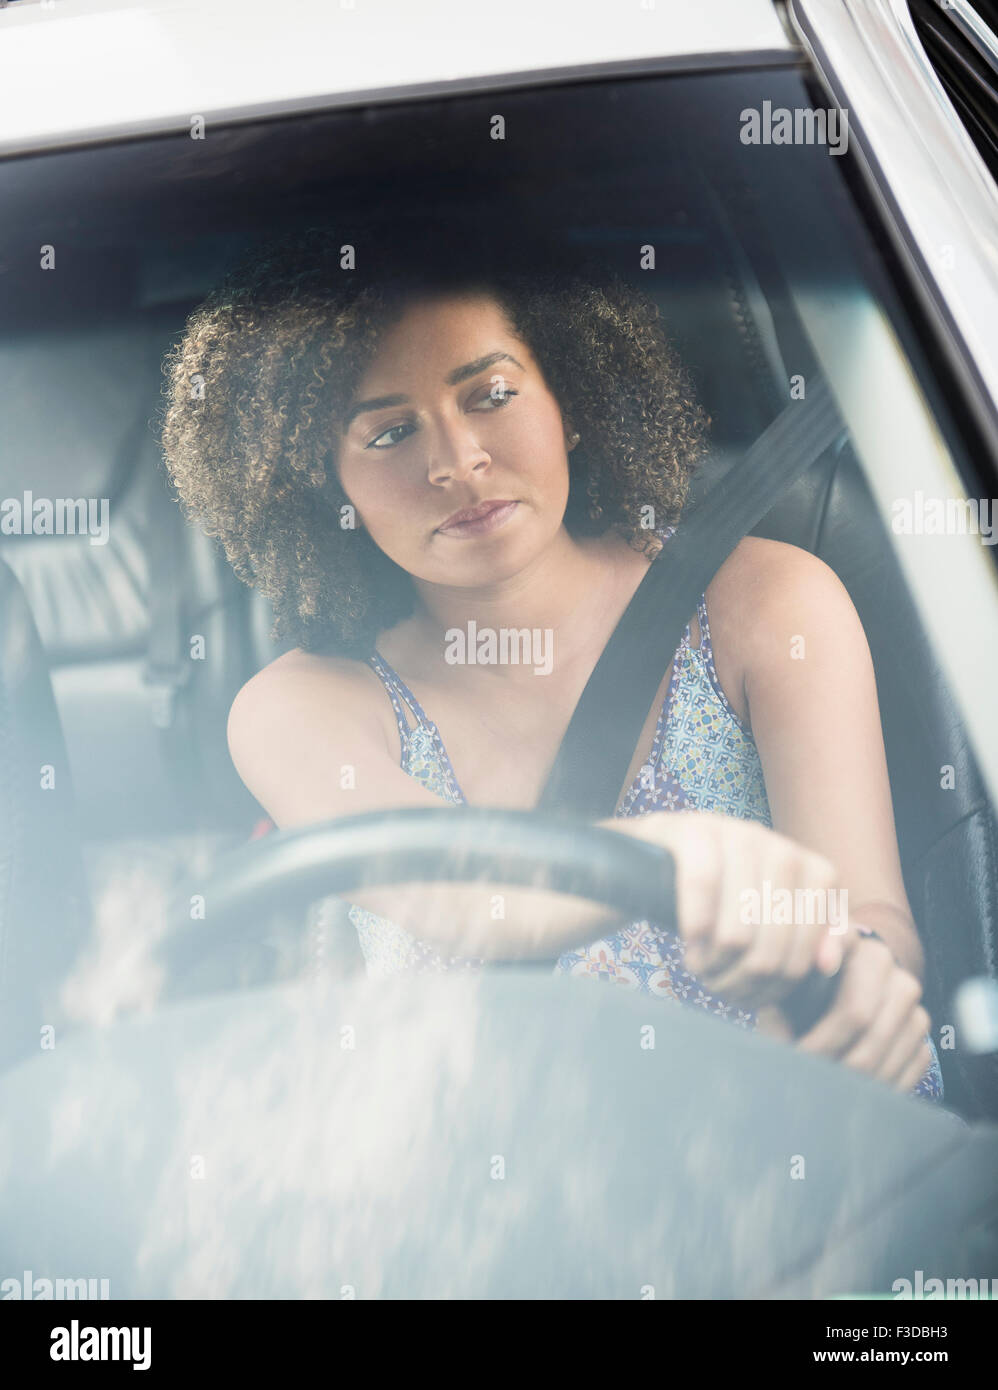 Young woman driving car - Stock Image